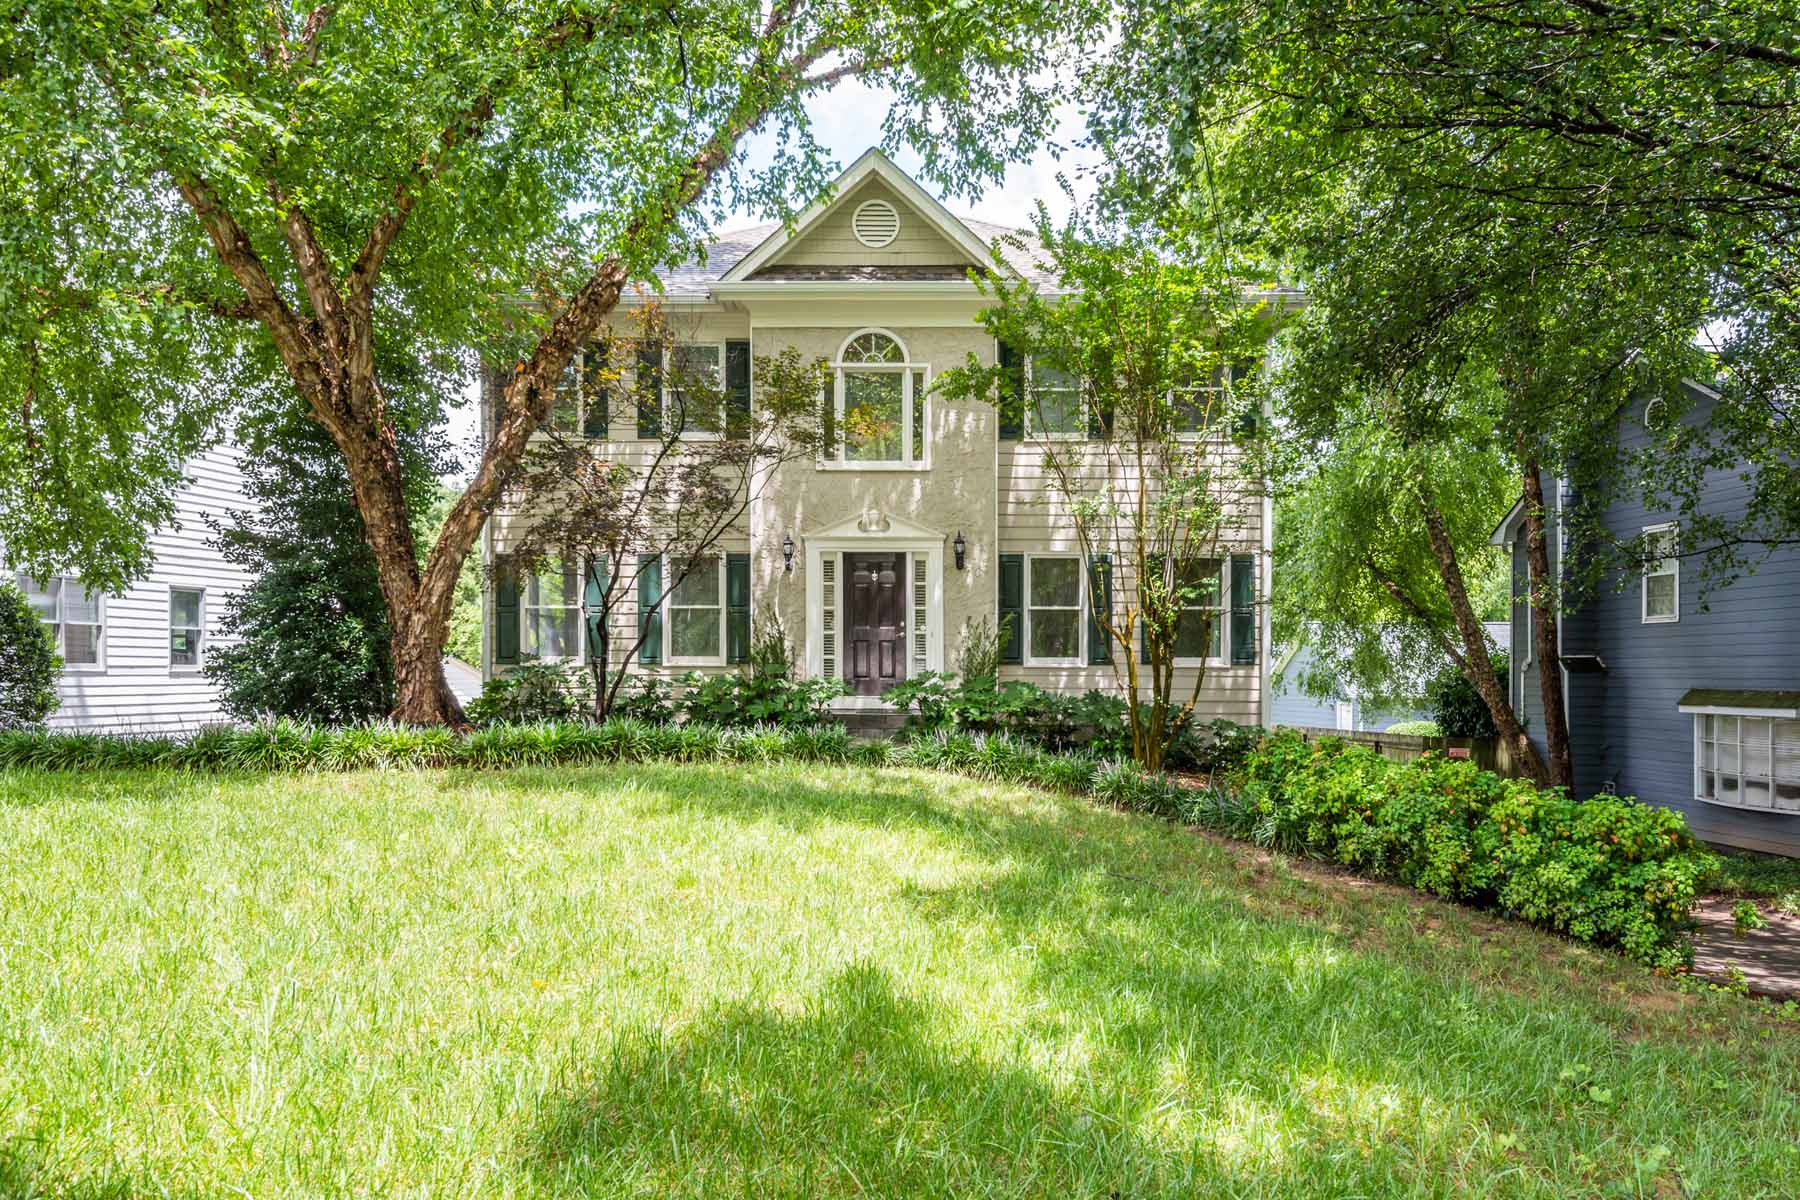 Single Family Home for Sale at Fully Renovated Buckhead Gem Overlooking Duck Pond 1623 Loring Drive NW Loring Heights, Atlanta, Georgia, 30309 United States